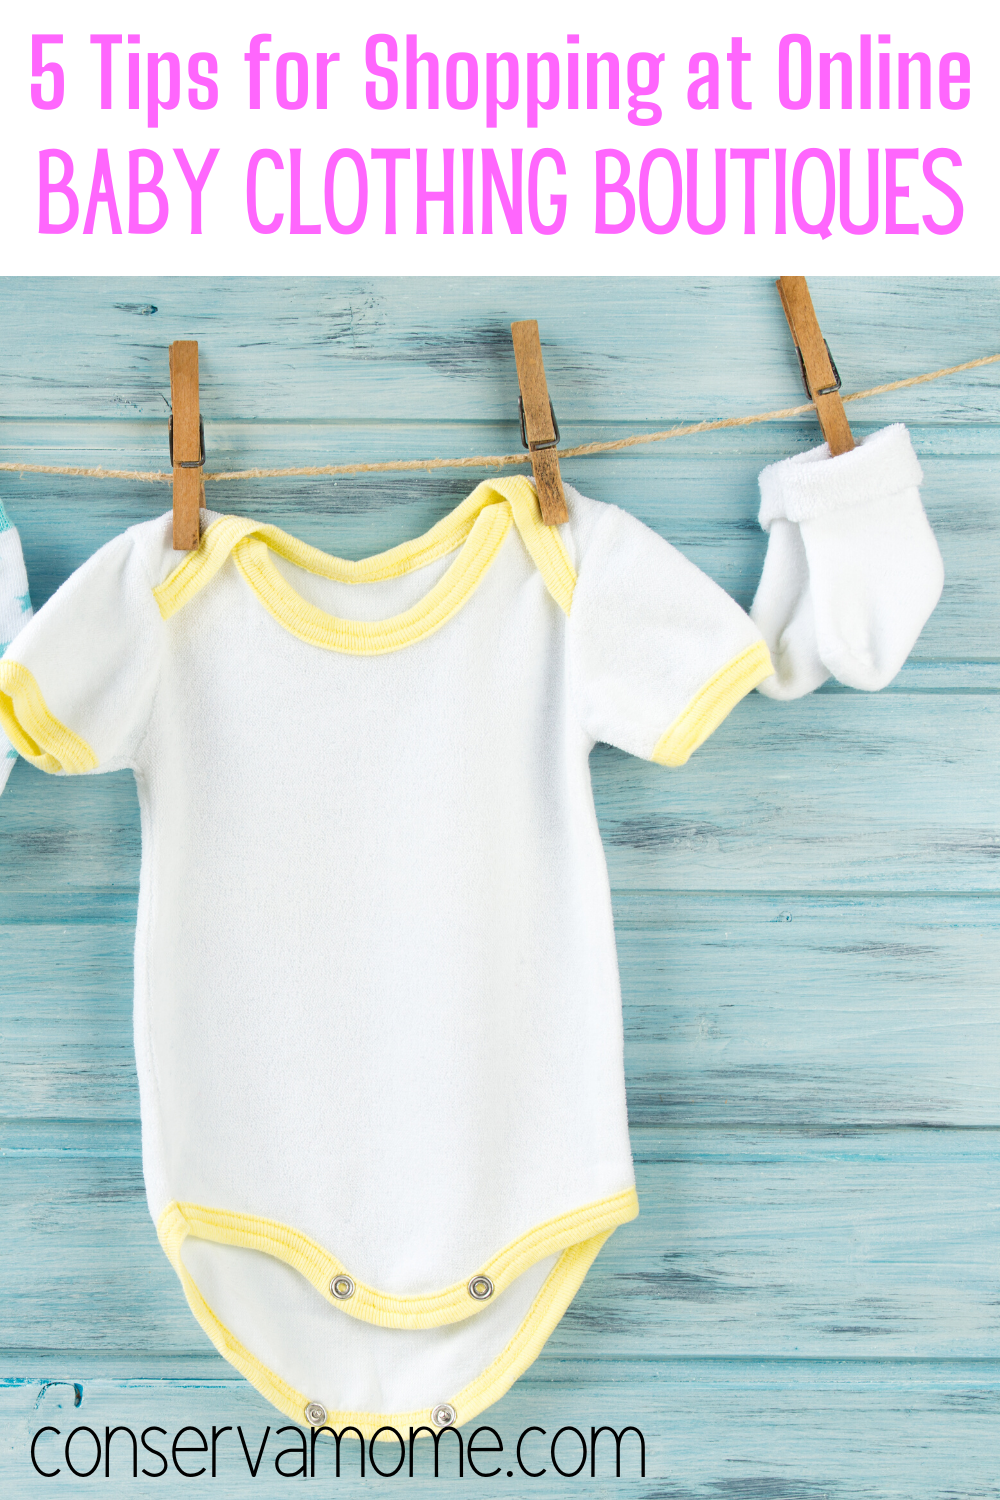 5 Tips for Shopping at Online Baby Clothing Boutiques